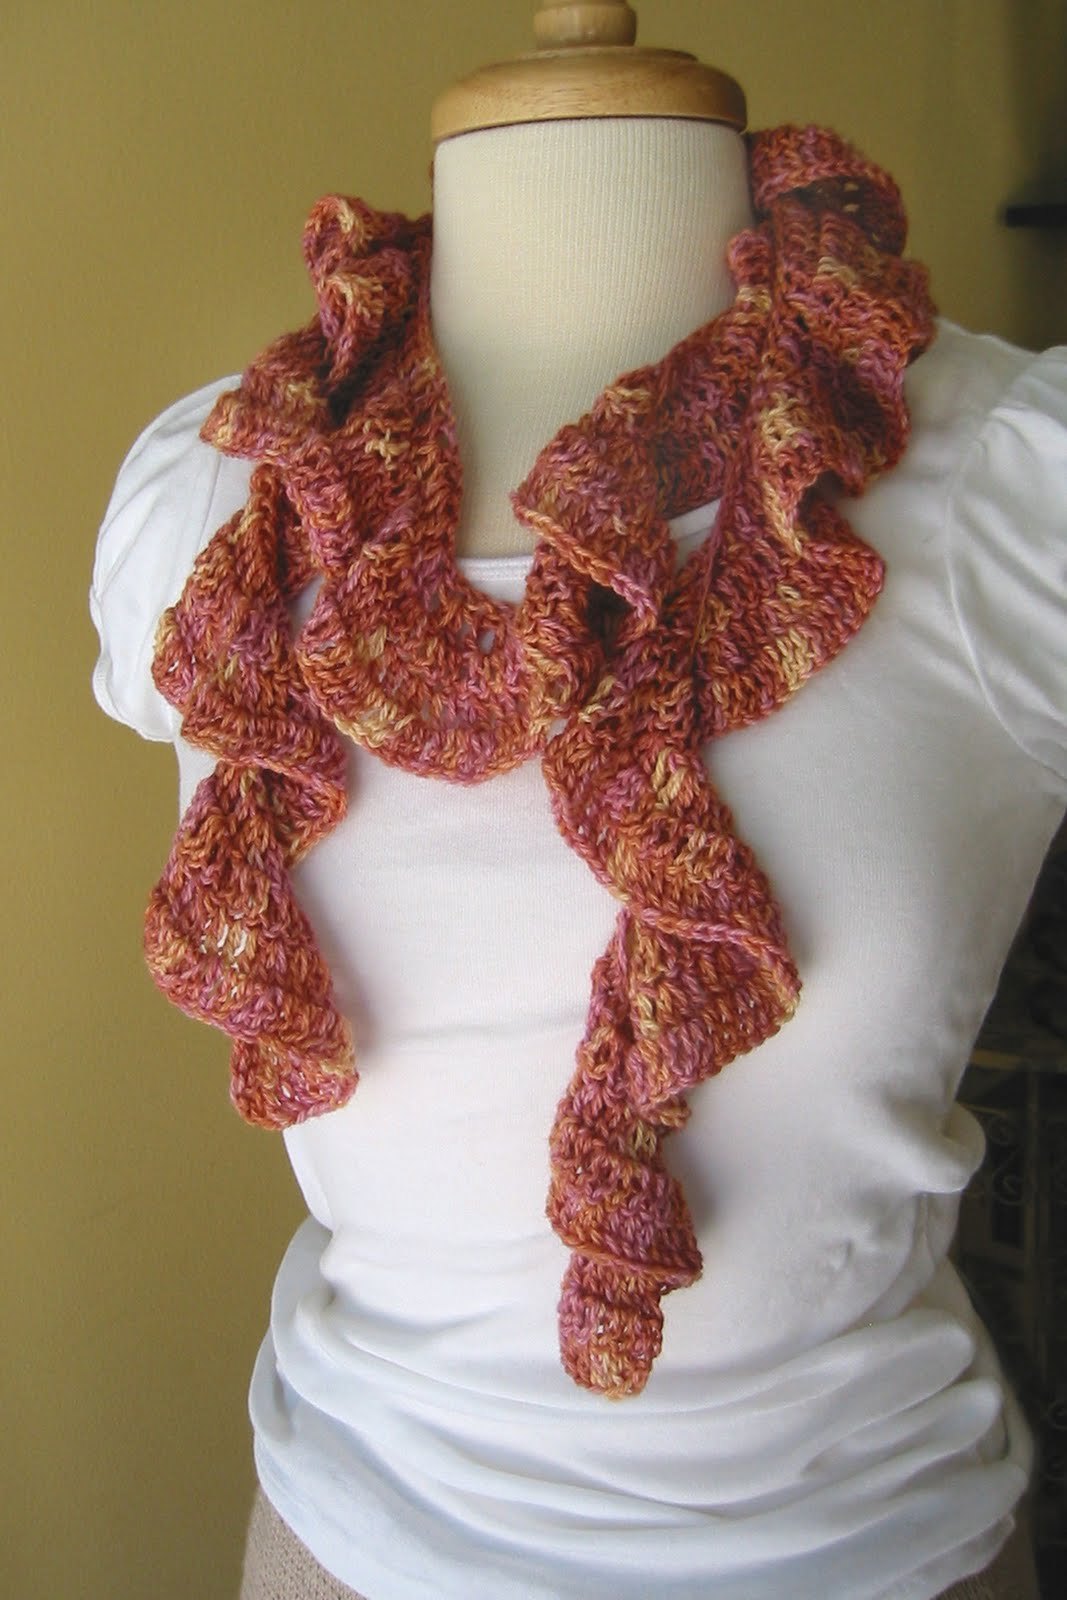 Free Knitting Pattern For Spiral Scarves : RUFFLE SPIRAL CROCHET SCARF PATTERN   Easy Crochet Patterns